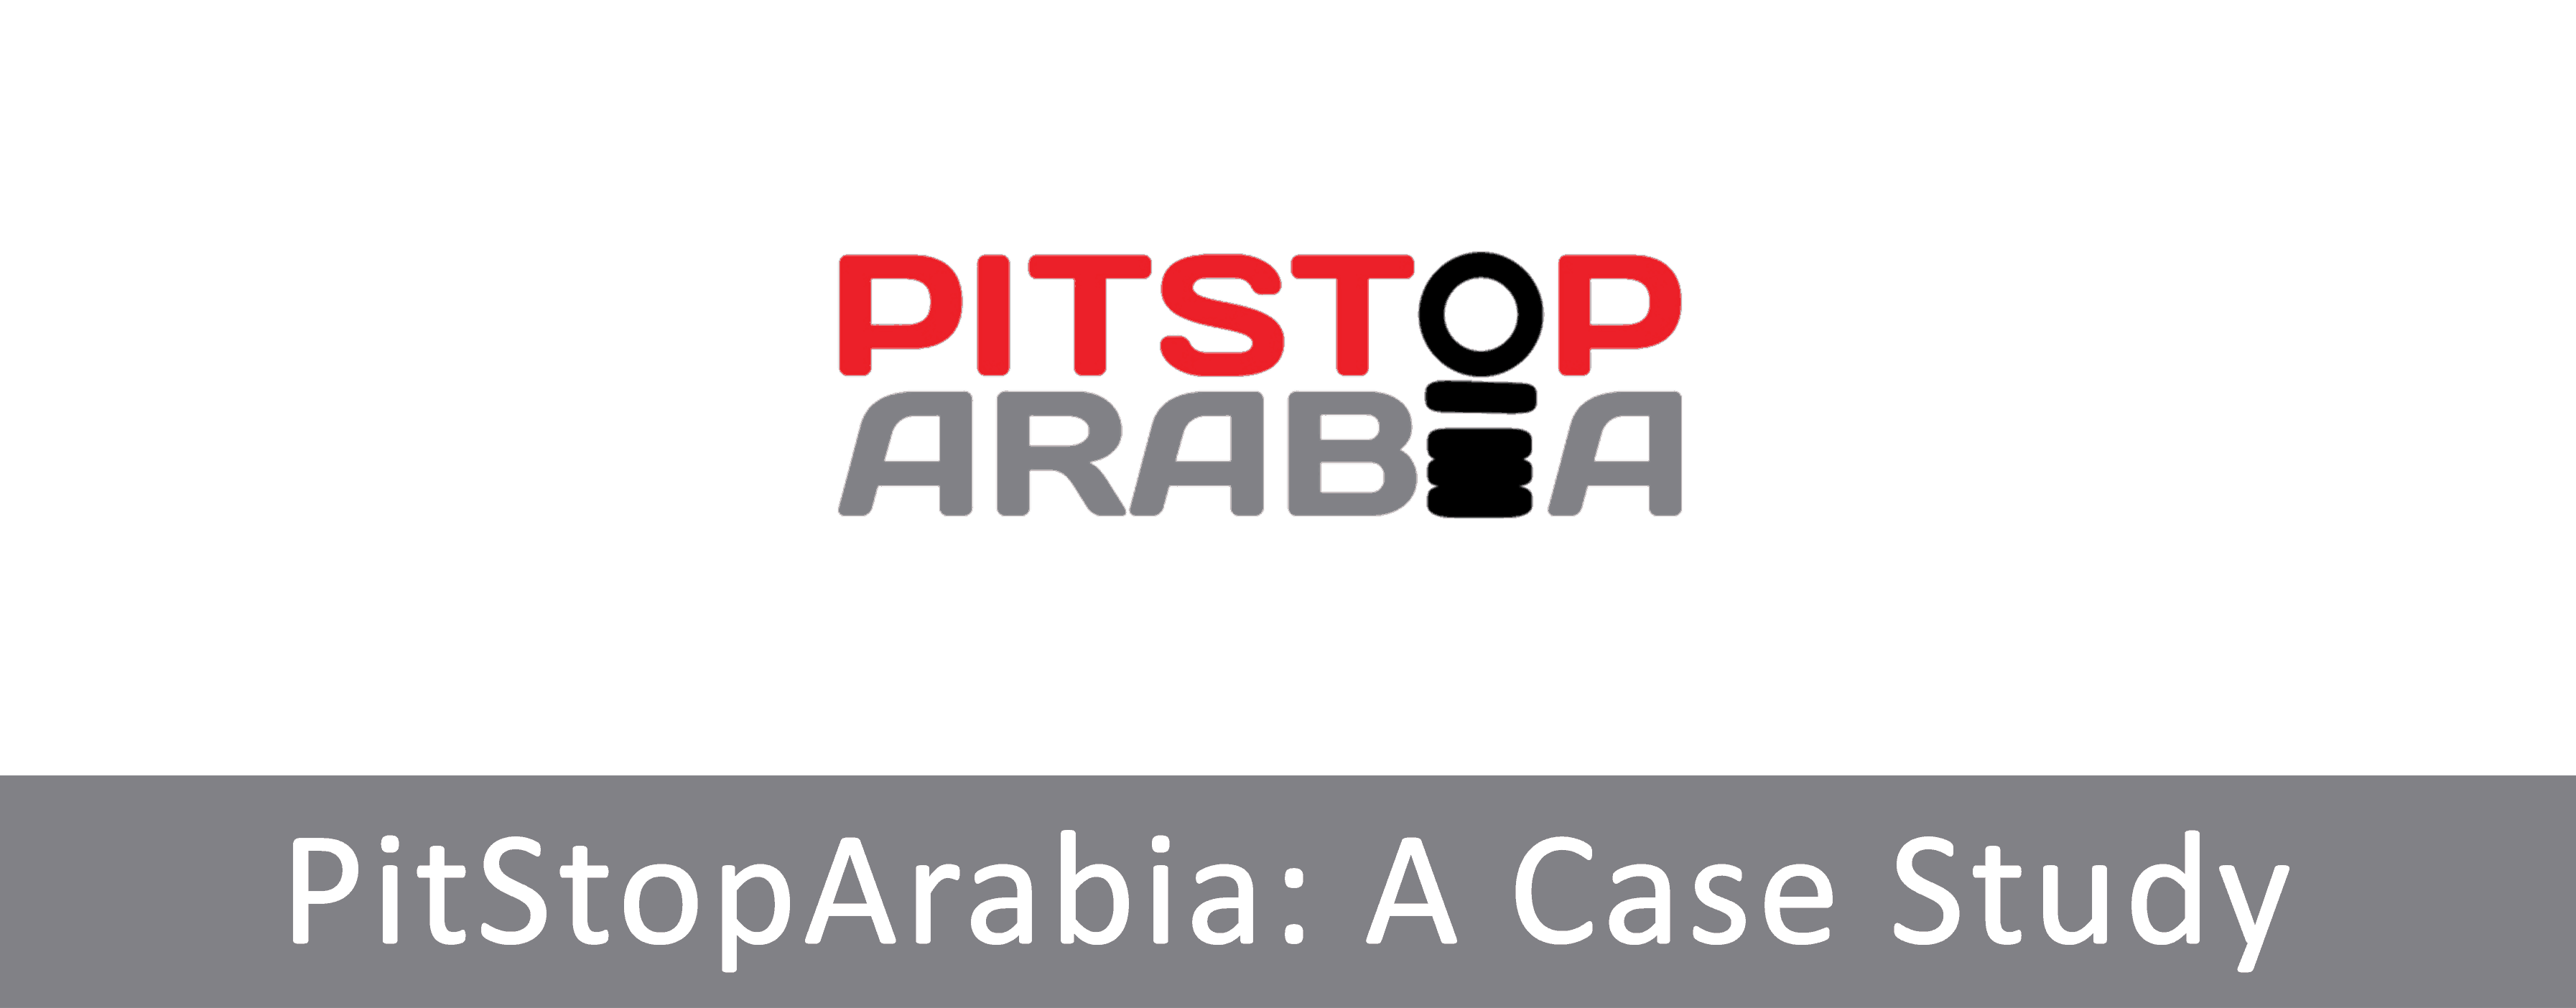 PitStopArabia Case Study - A Proud Client of FME Extensions